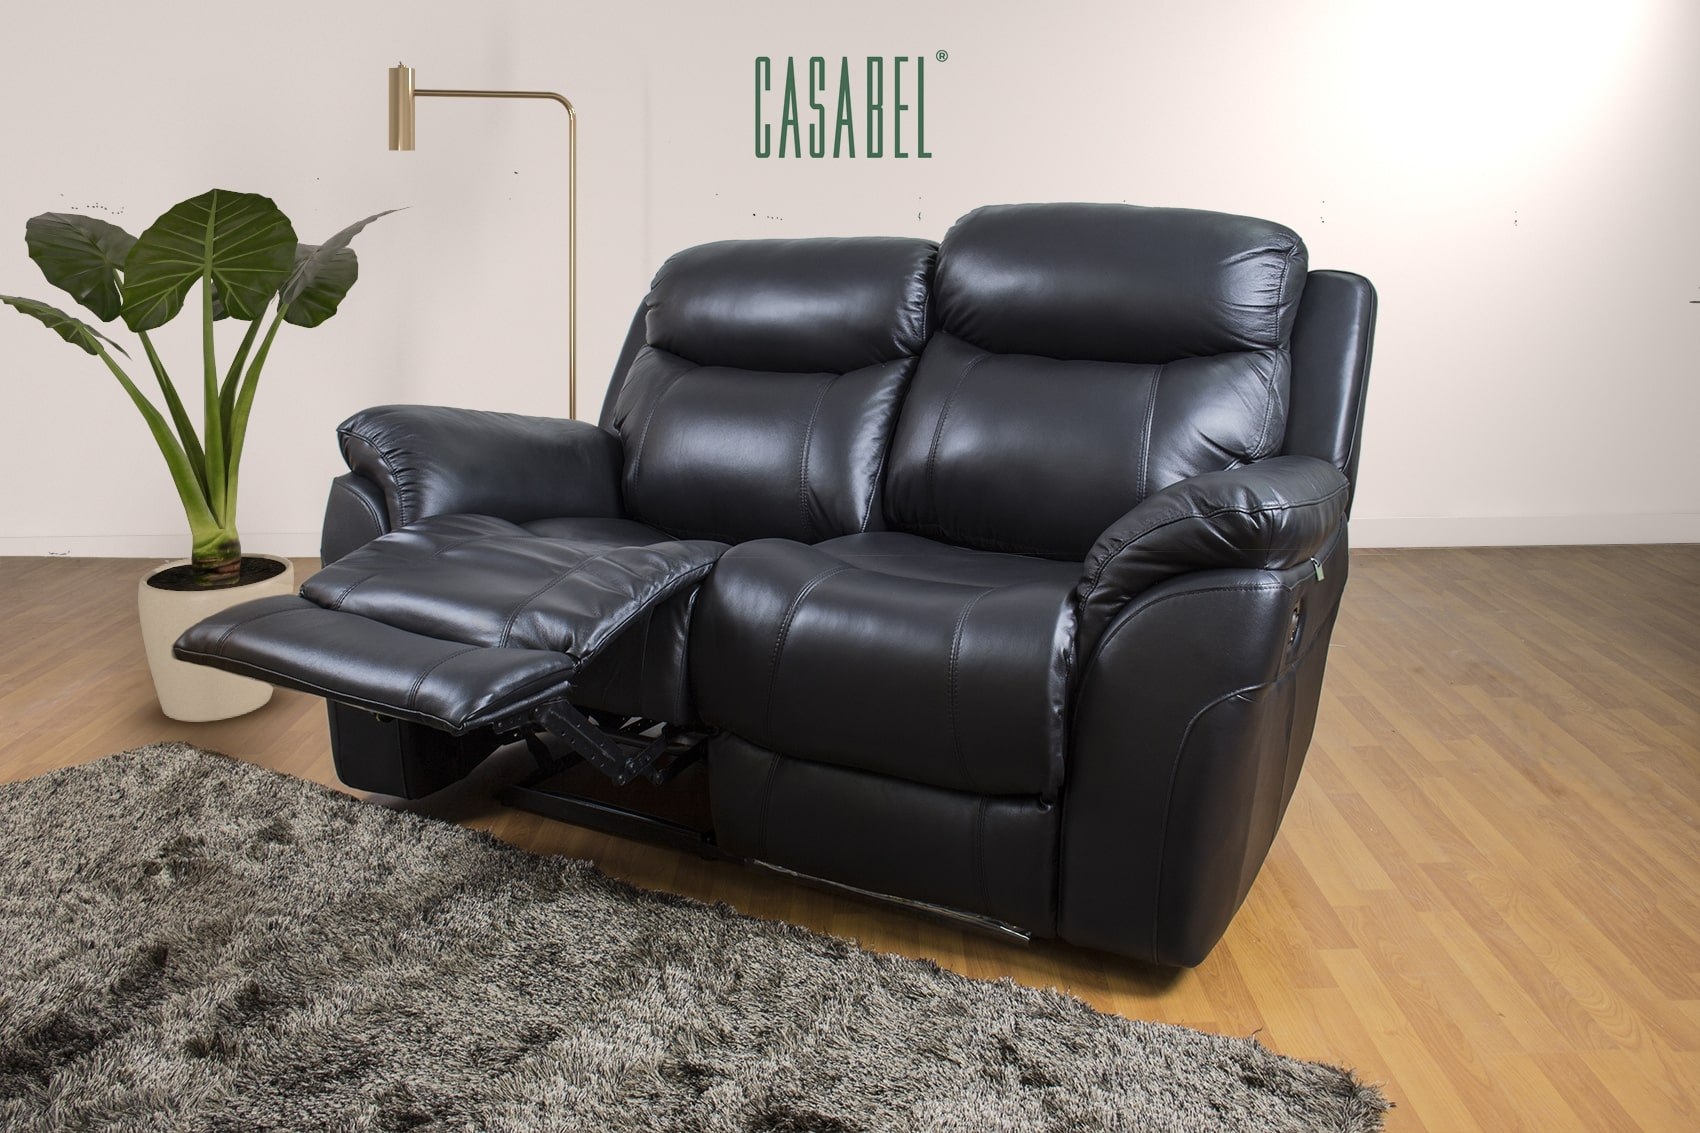 Milagro Sofa Recliner 2 Kursi Black, sofa recliner 2 seater